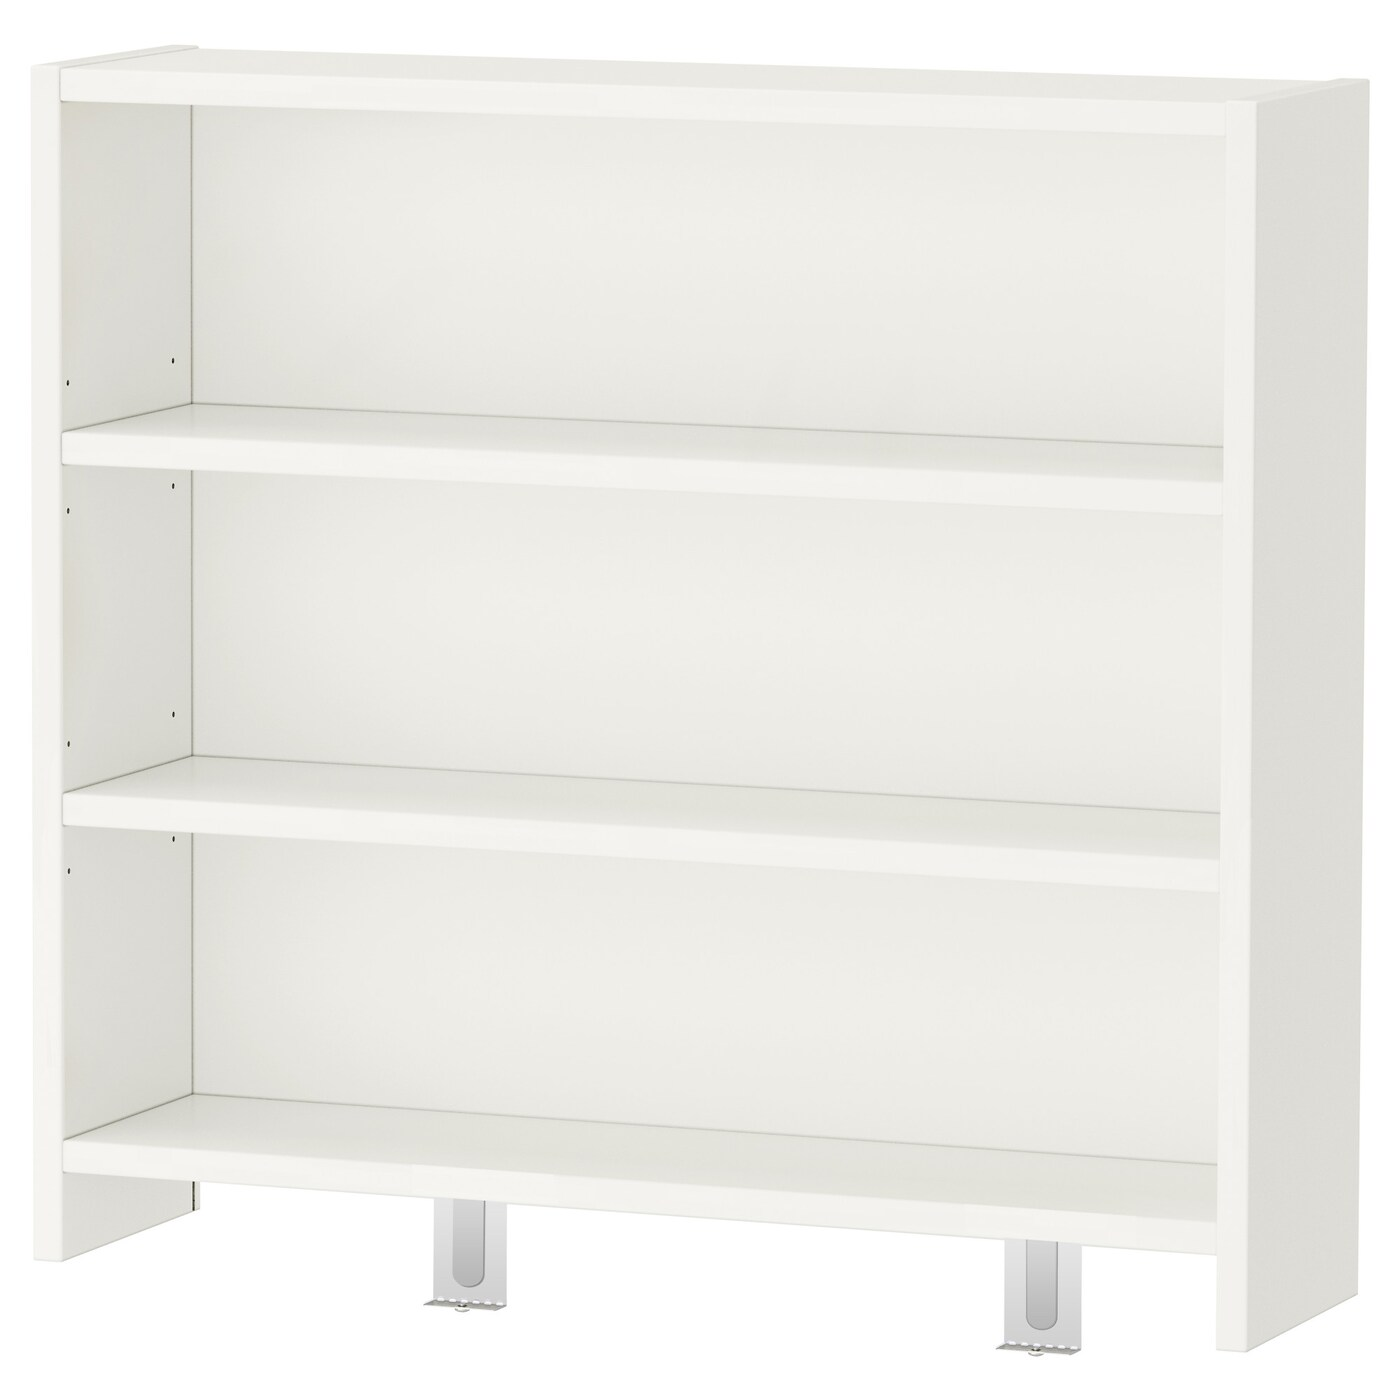 Ikea Desk Top PÅhl Desk Top Shelf White Green